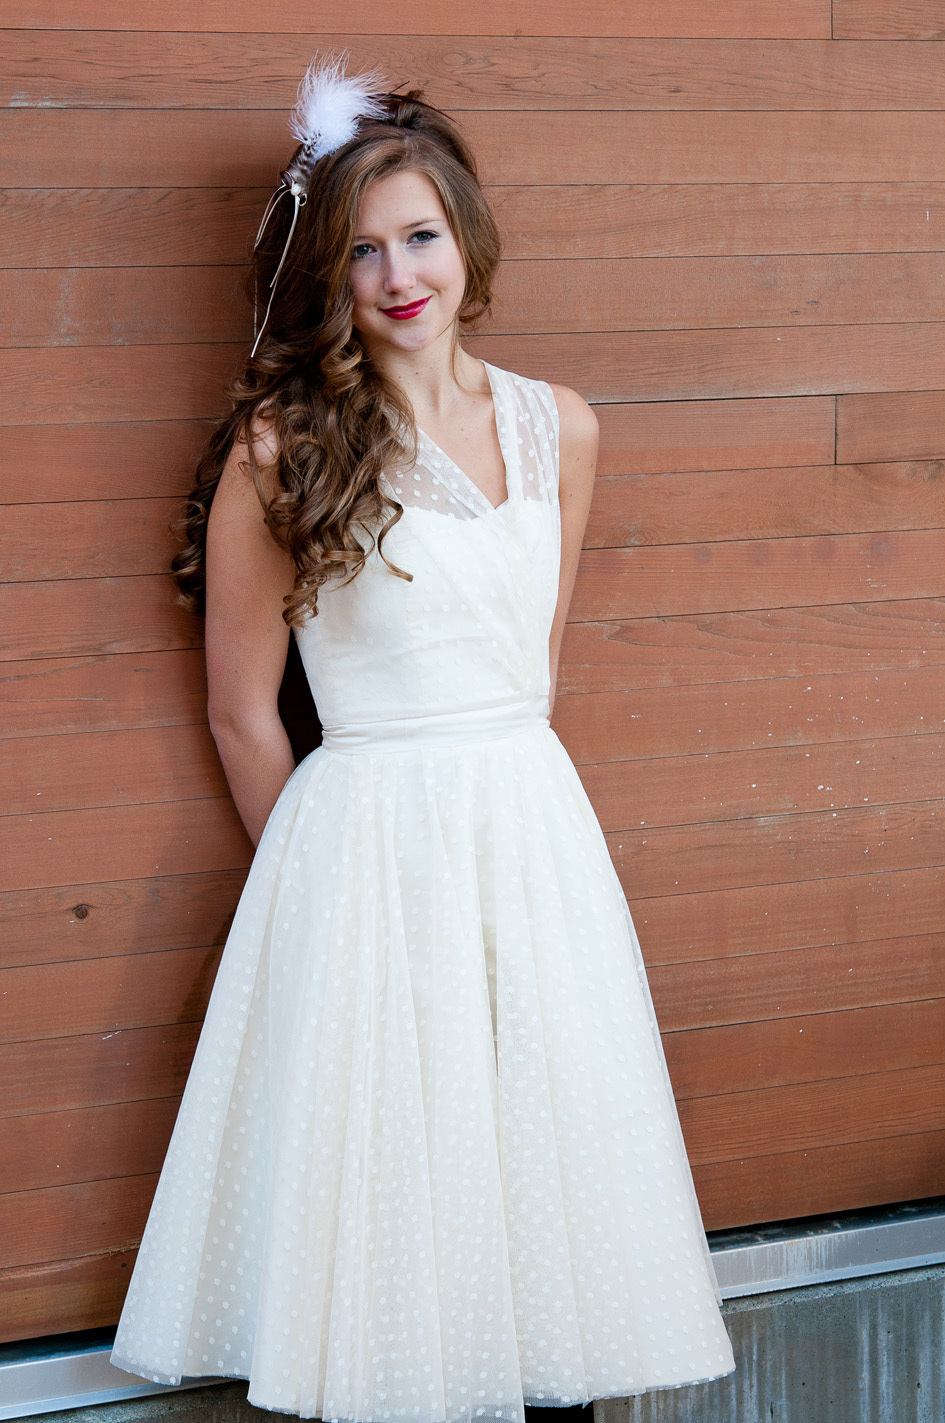 Vintage-inspired-polka-dot-wedding-dress-bridal-style-unique.full